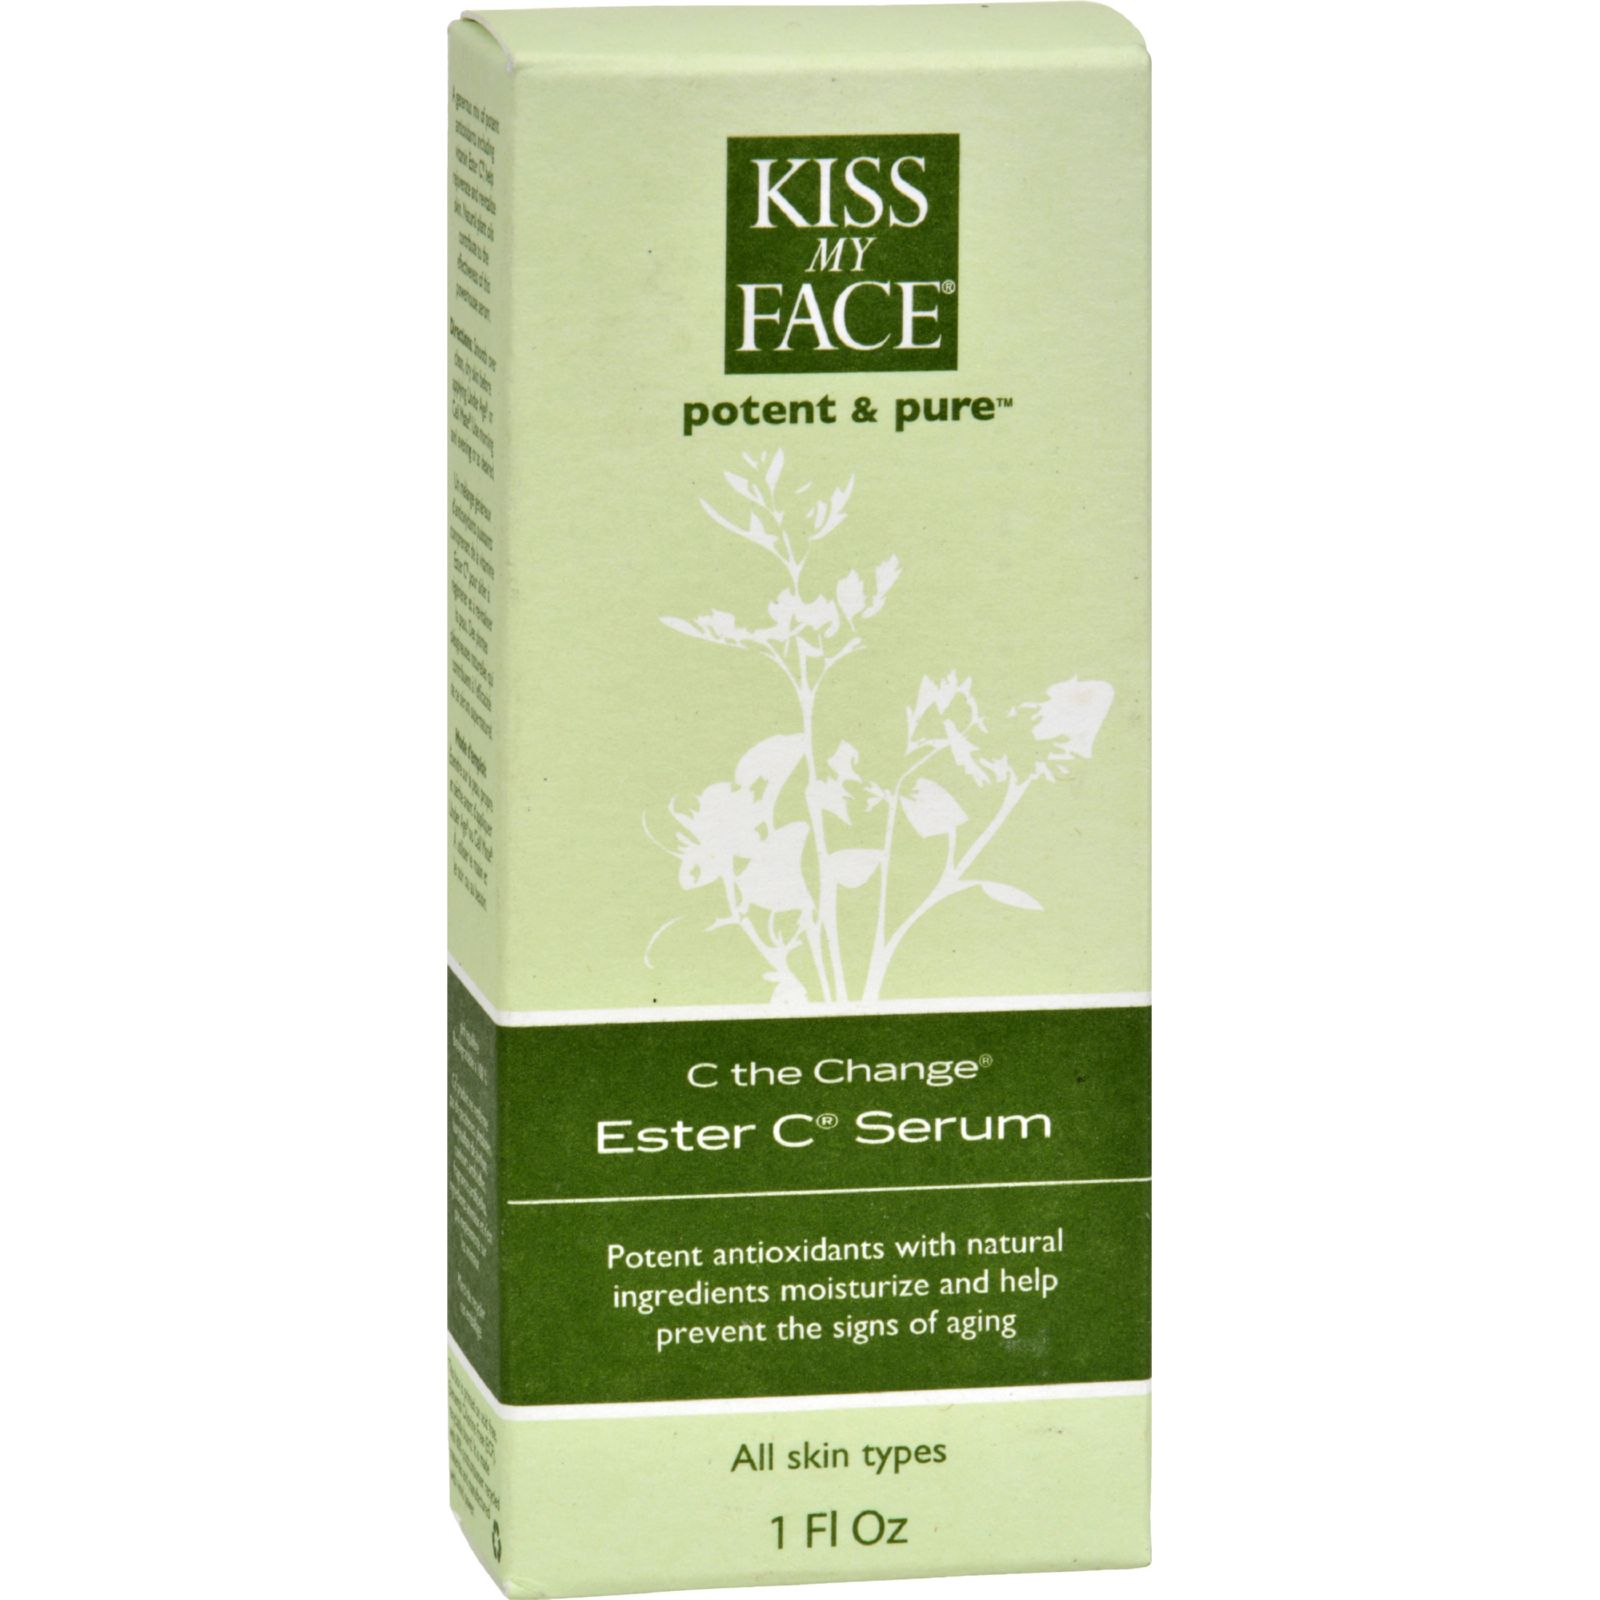 Kiss My Face C The Change Ester C Serum - 1 fl oz